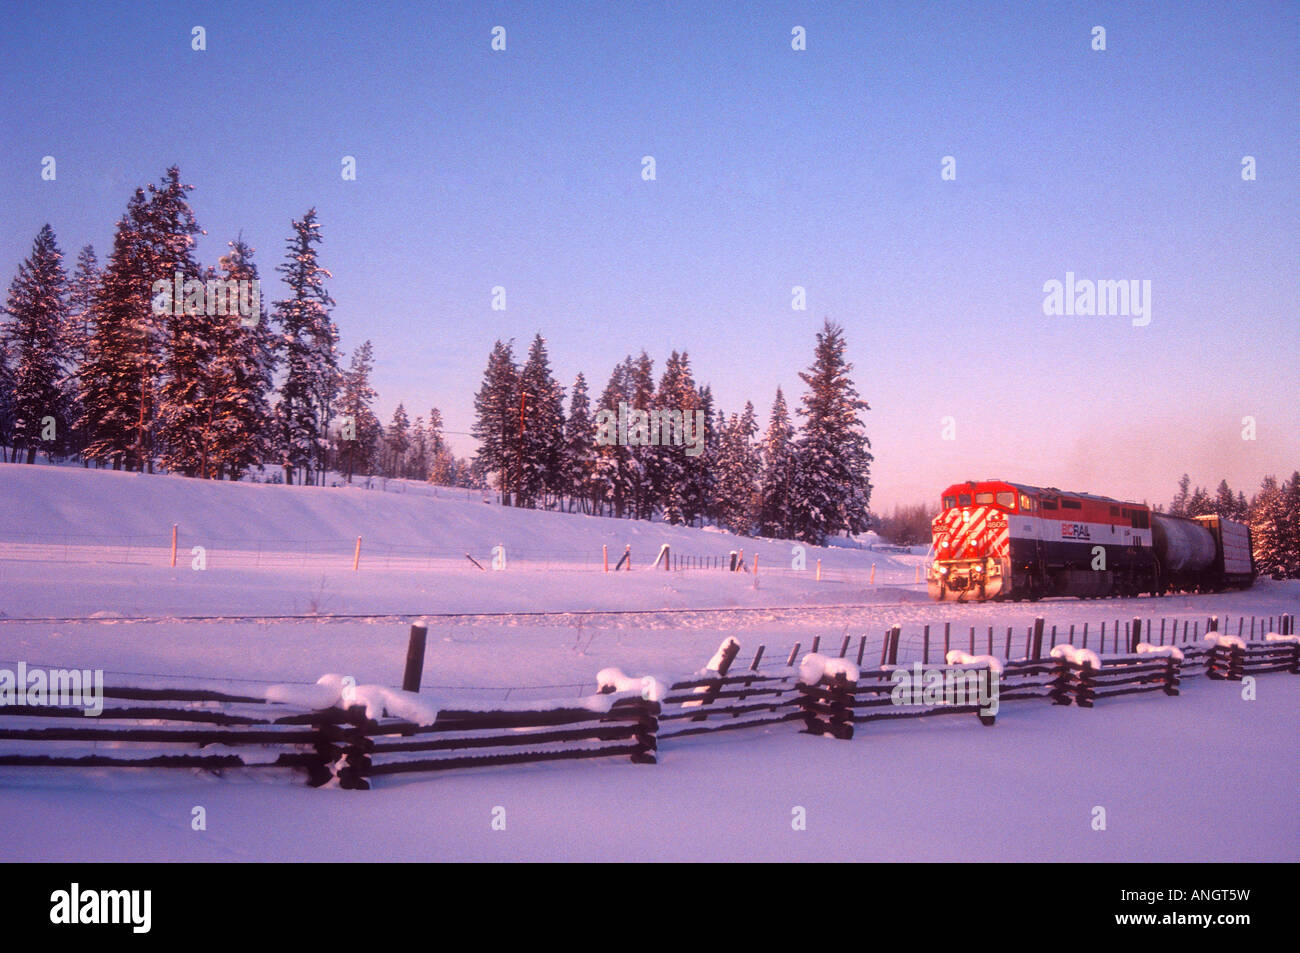 BC Rail freight train travels through central BC at sunset, British Columbia, Canada. - Stock Image